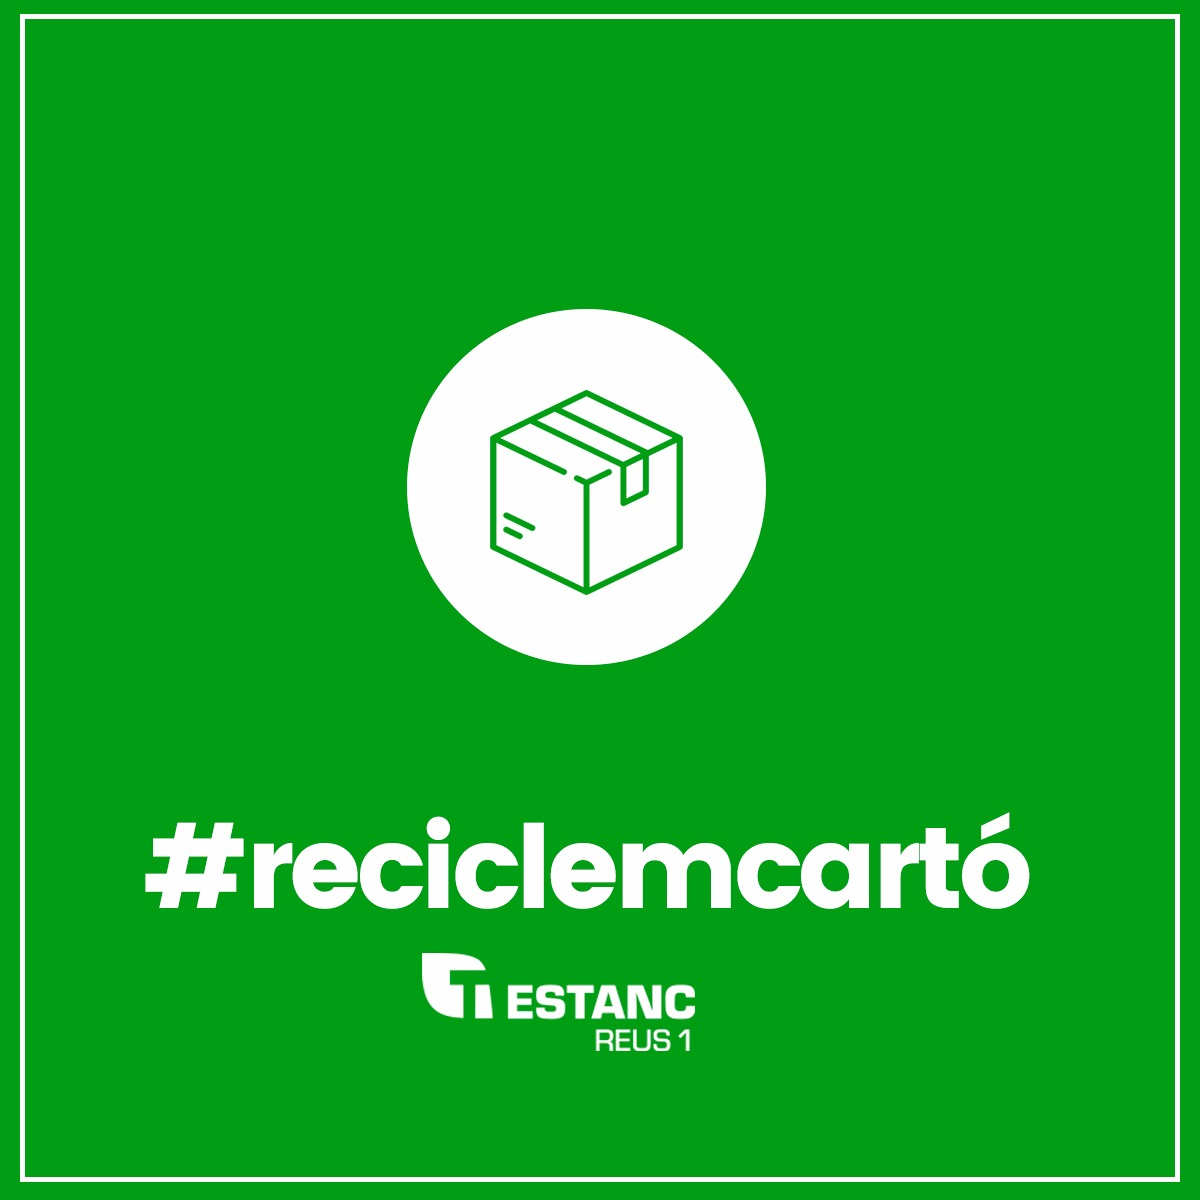 Reciclem cartó